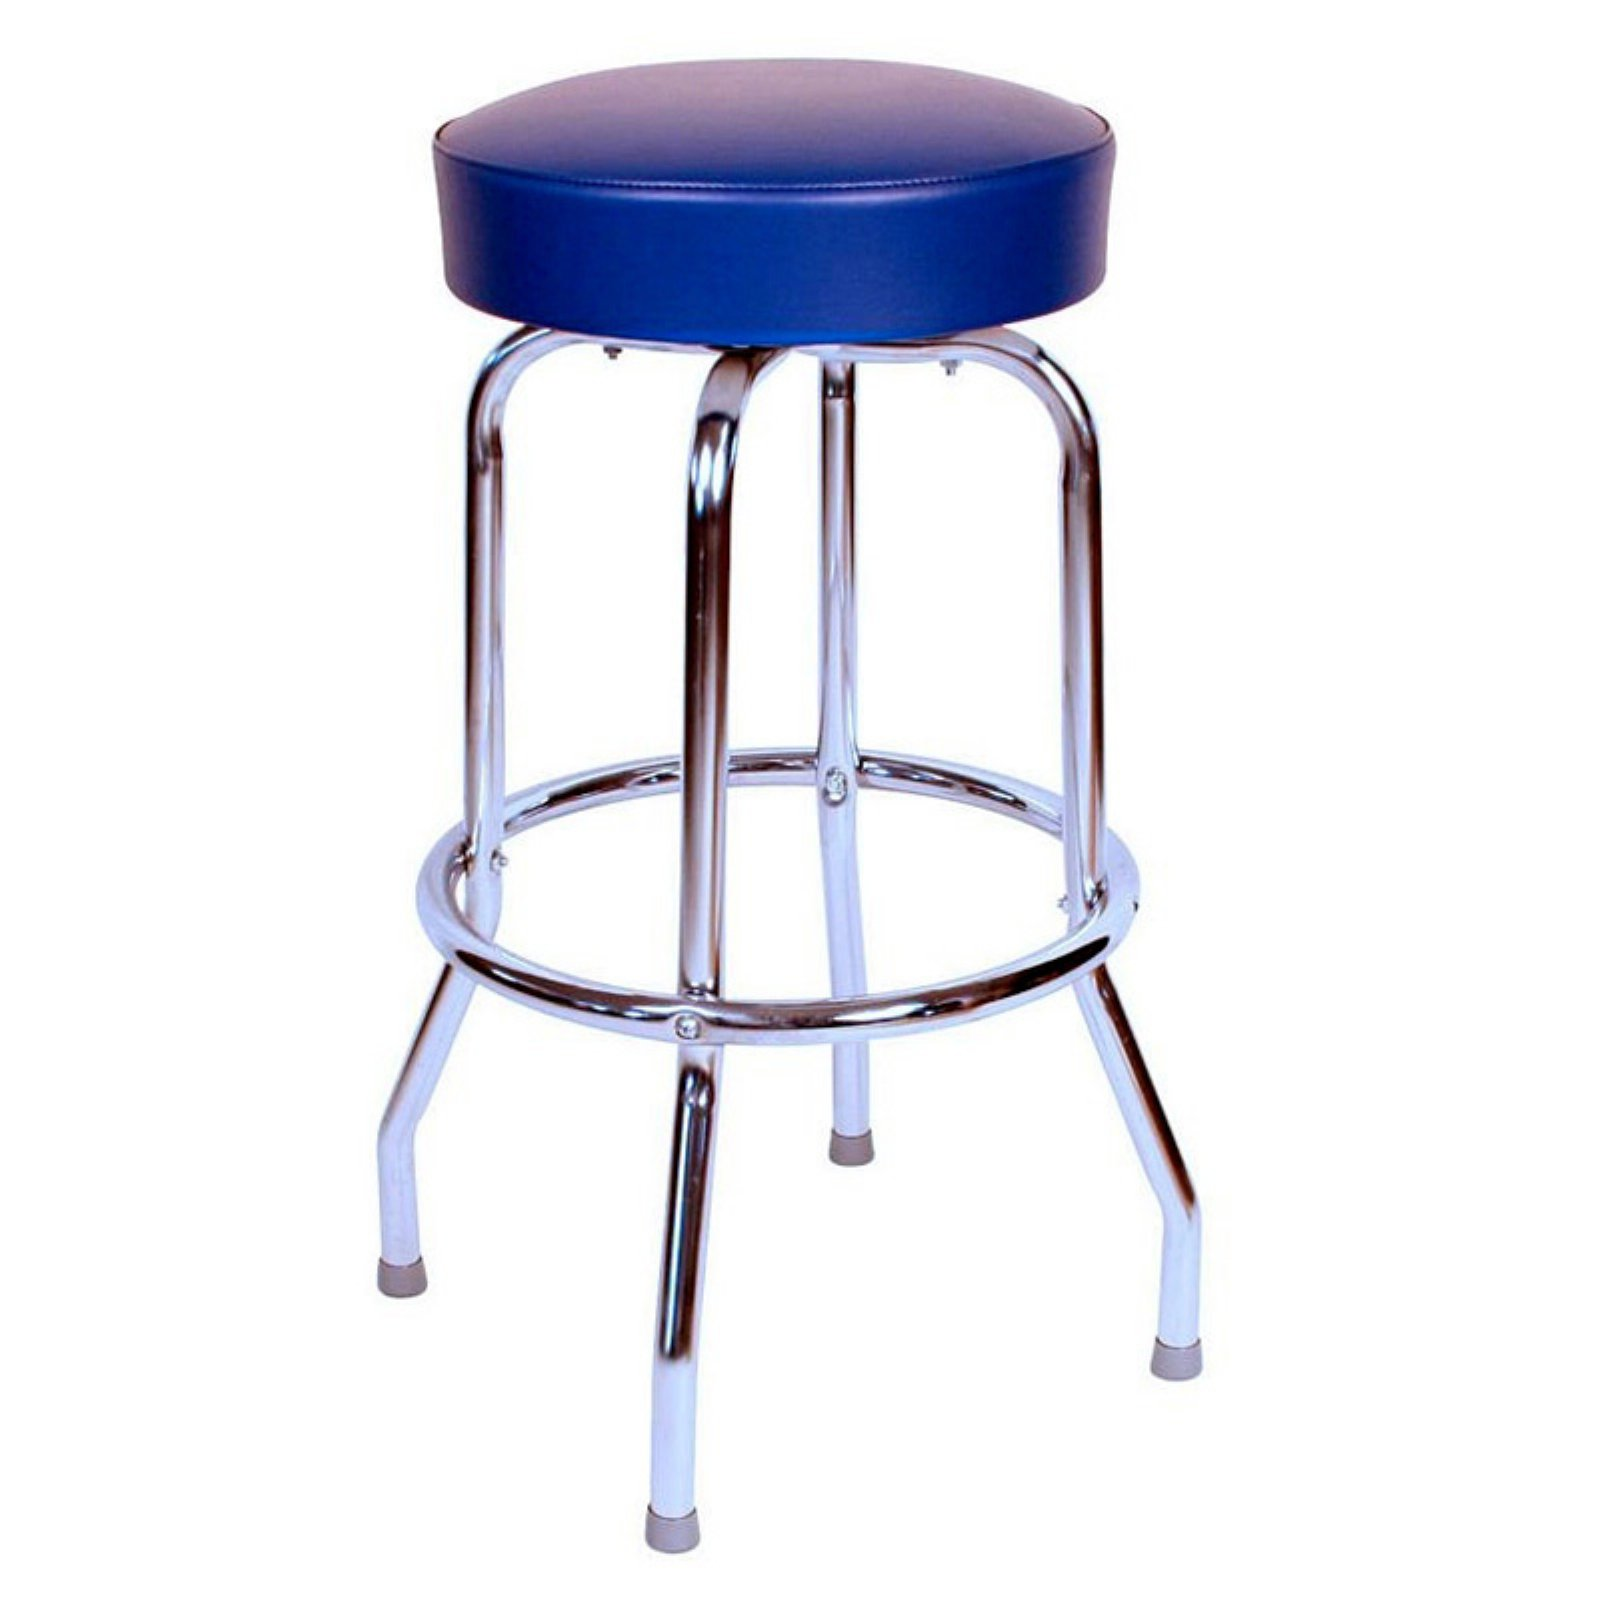 Richardson Seating Floridian 30 in. Swivel Bar Stool with Chrome Base